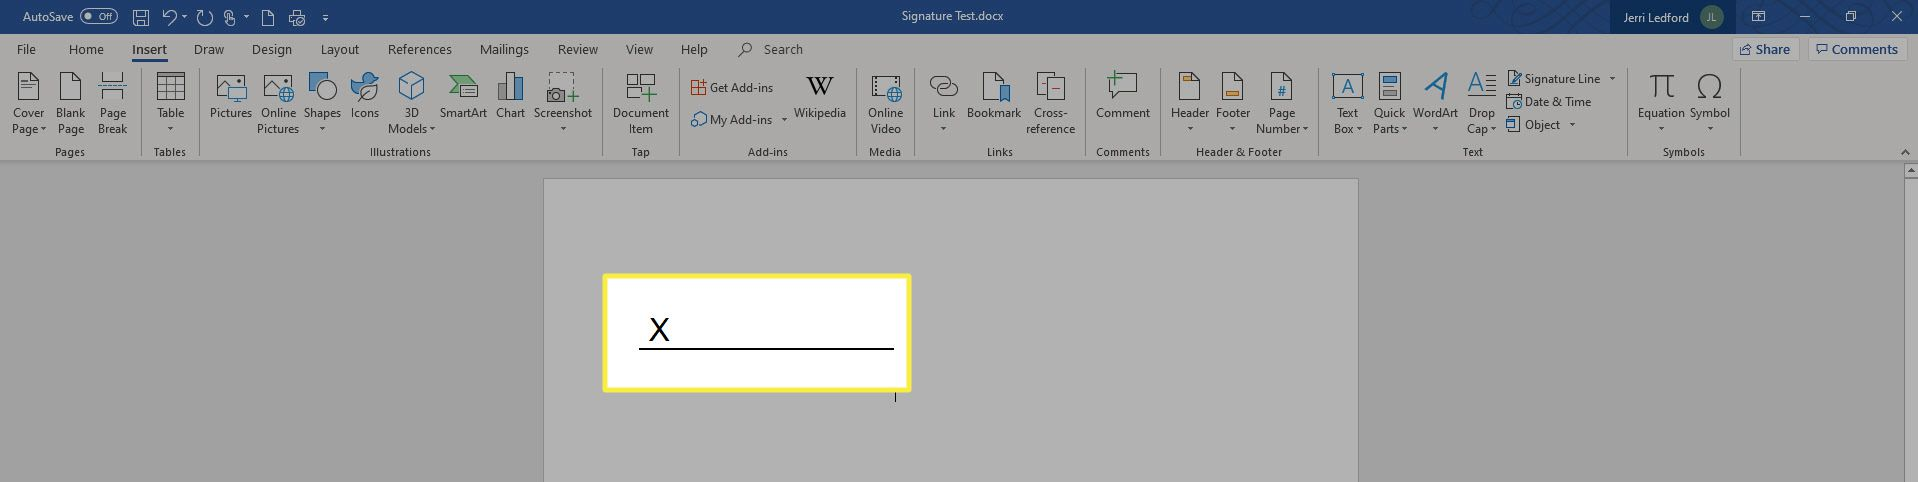 A blank signature line in MS Word.